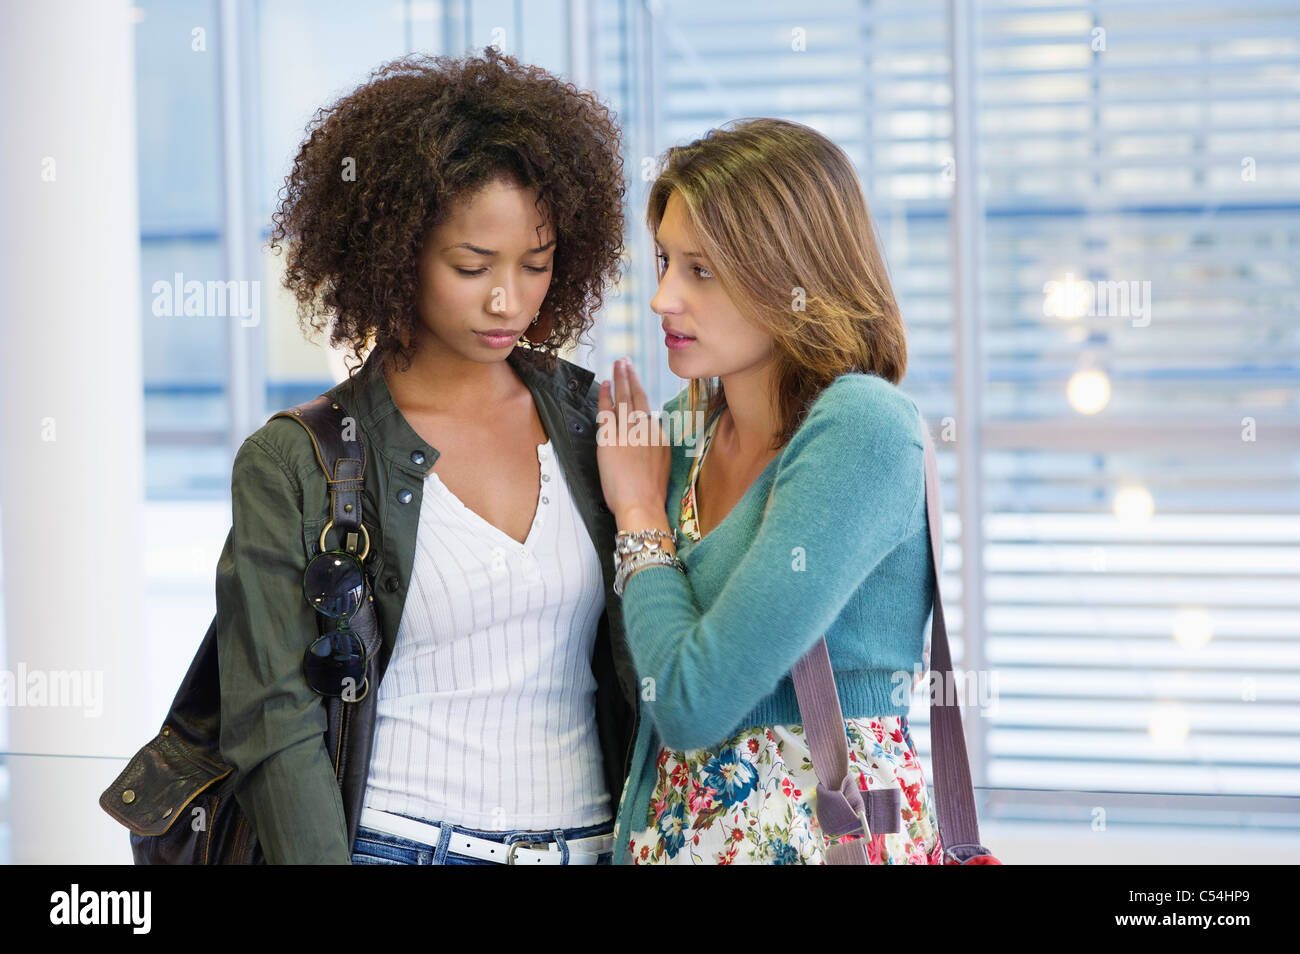 Caucasian woman consoling to an African American woman in university - Stock Image